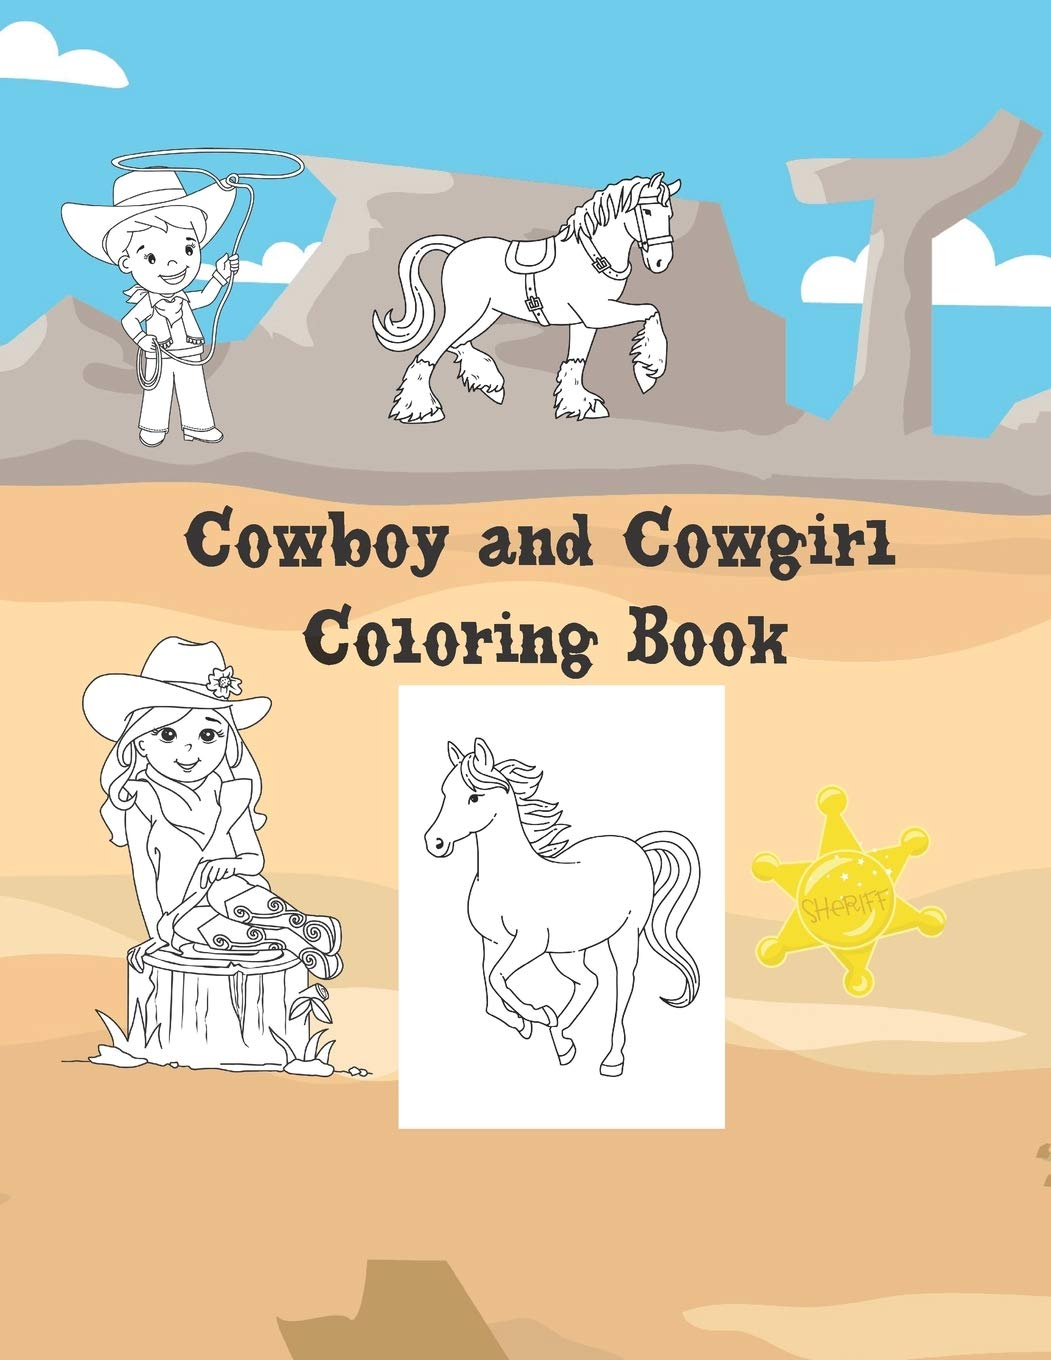 Cowboy And Cowgirl Coloring Book Large 8 5x11 40 Coloring Pages Amazon Co Uk Press Get Silly Books